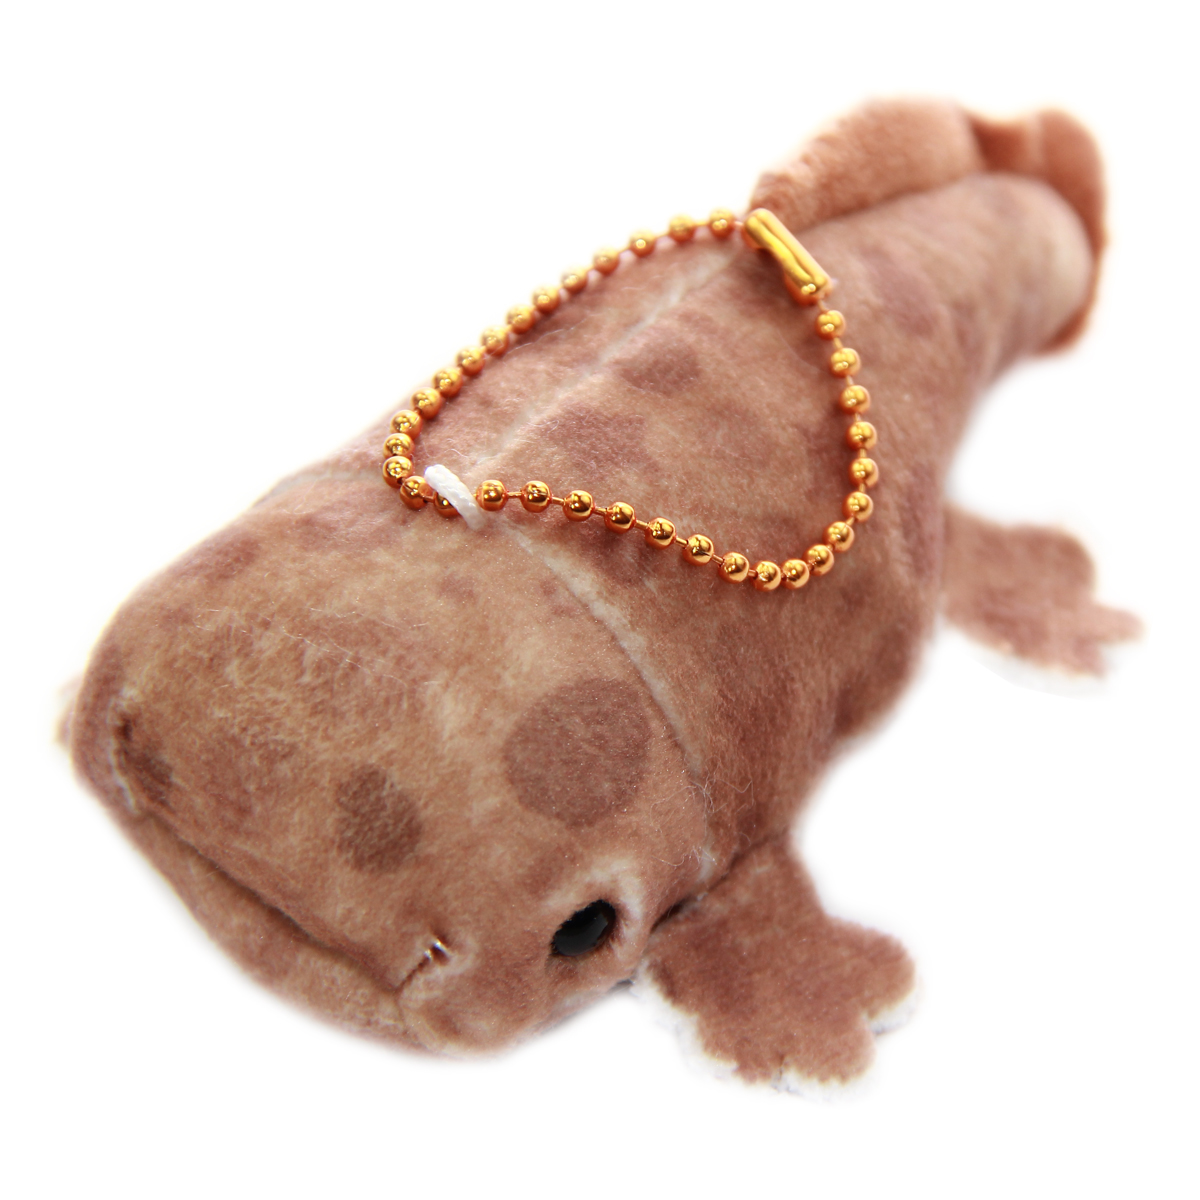 Mochi Puni Salamander Plush Doll, Keychain Size, Brown 4 Inches